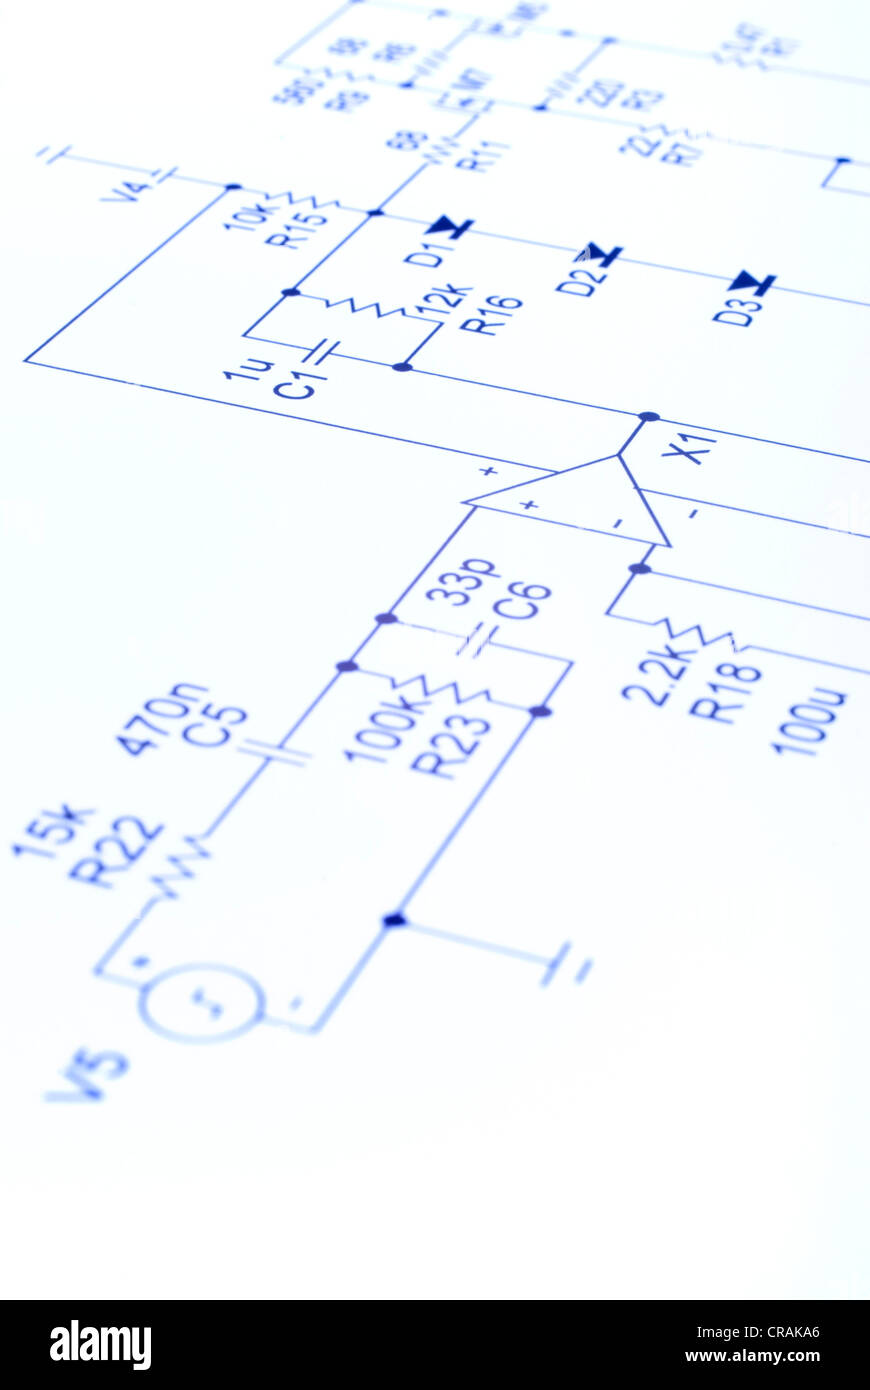 Electronic Circuit Stock Photos Images Diagram In Blue Our Own Design No Copyright Issues